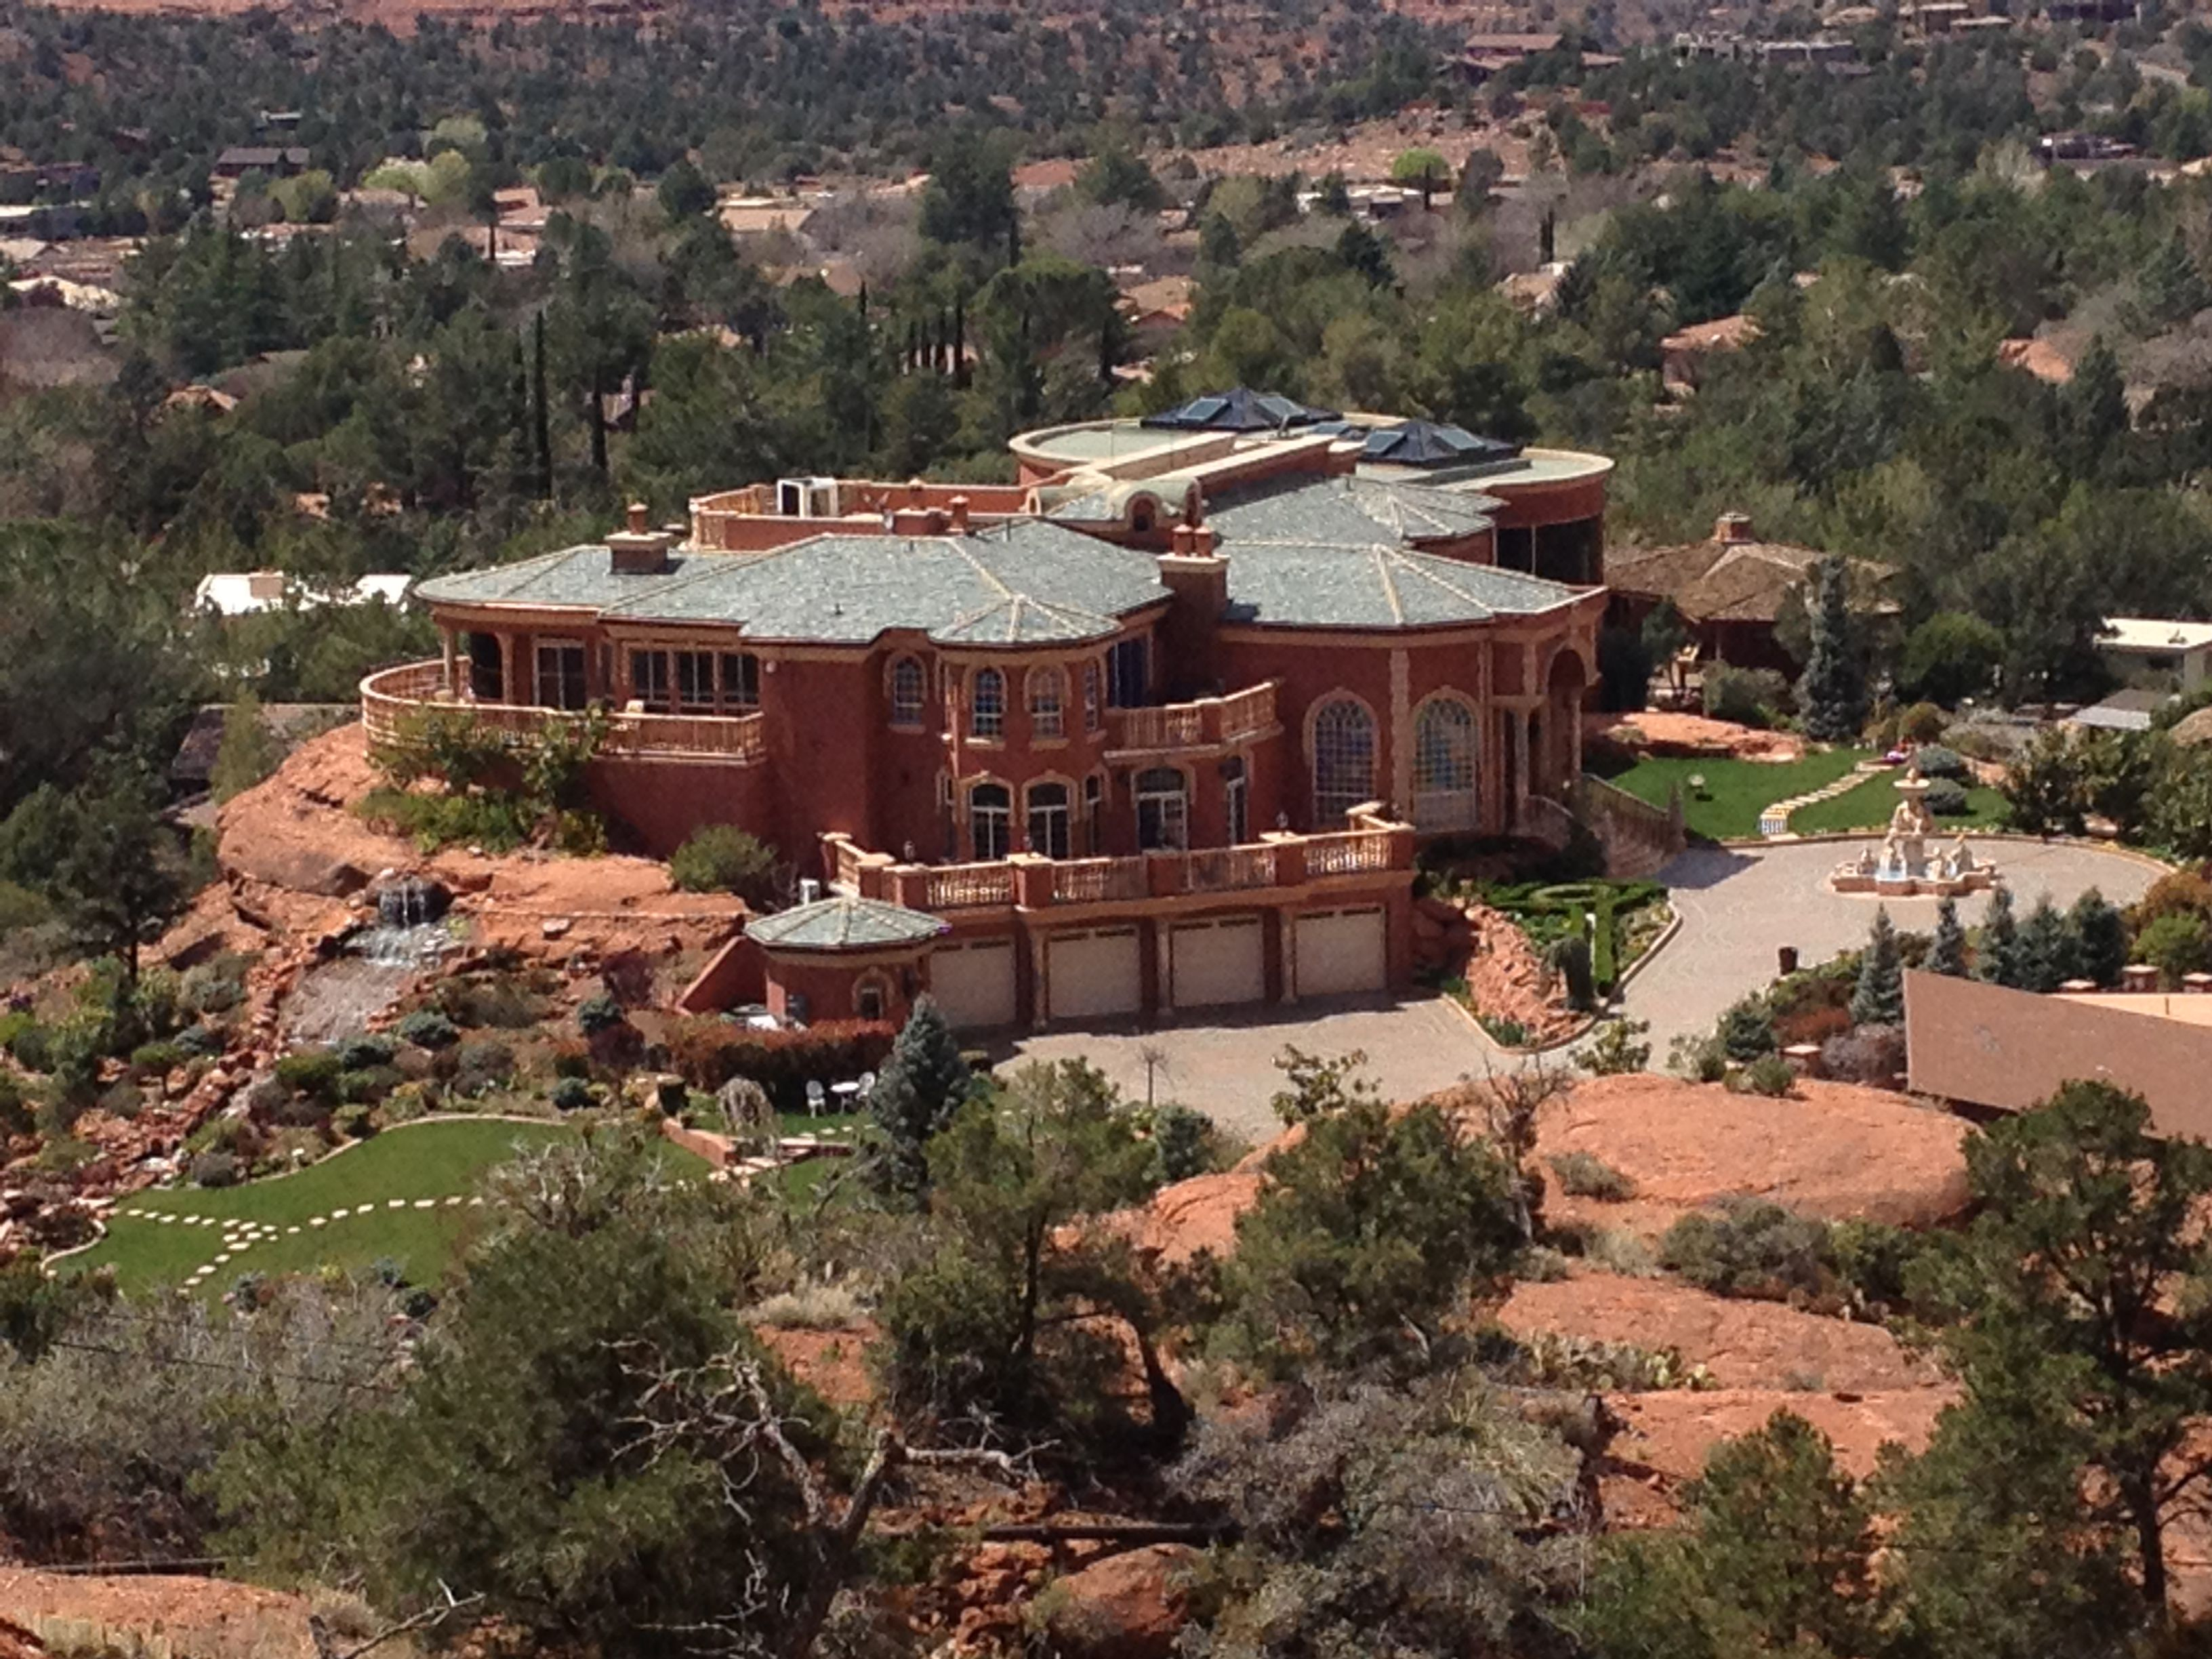 Stylist And Luxury Arizona Home And Garden Show. Desert mansion  Sedona Arizona Time Tide Wait For None